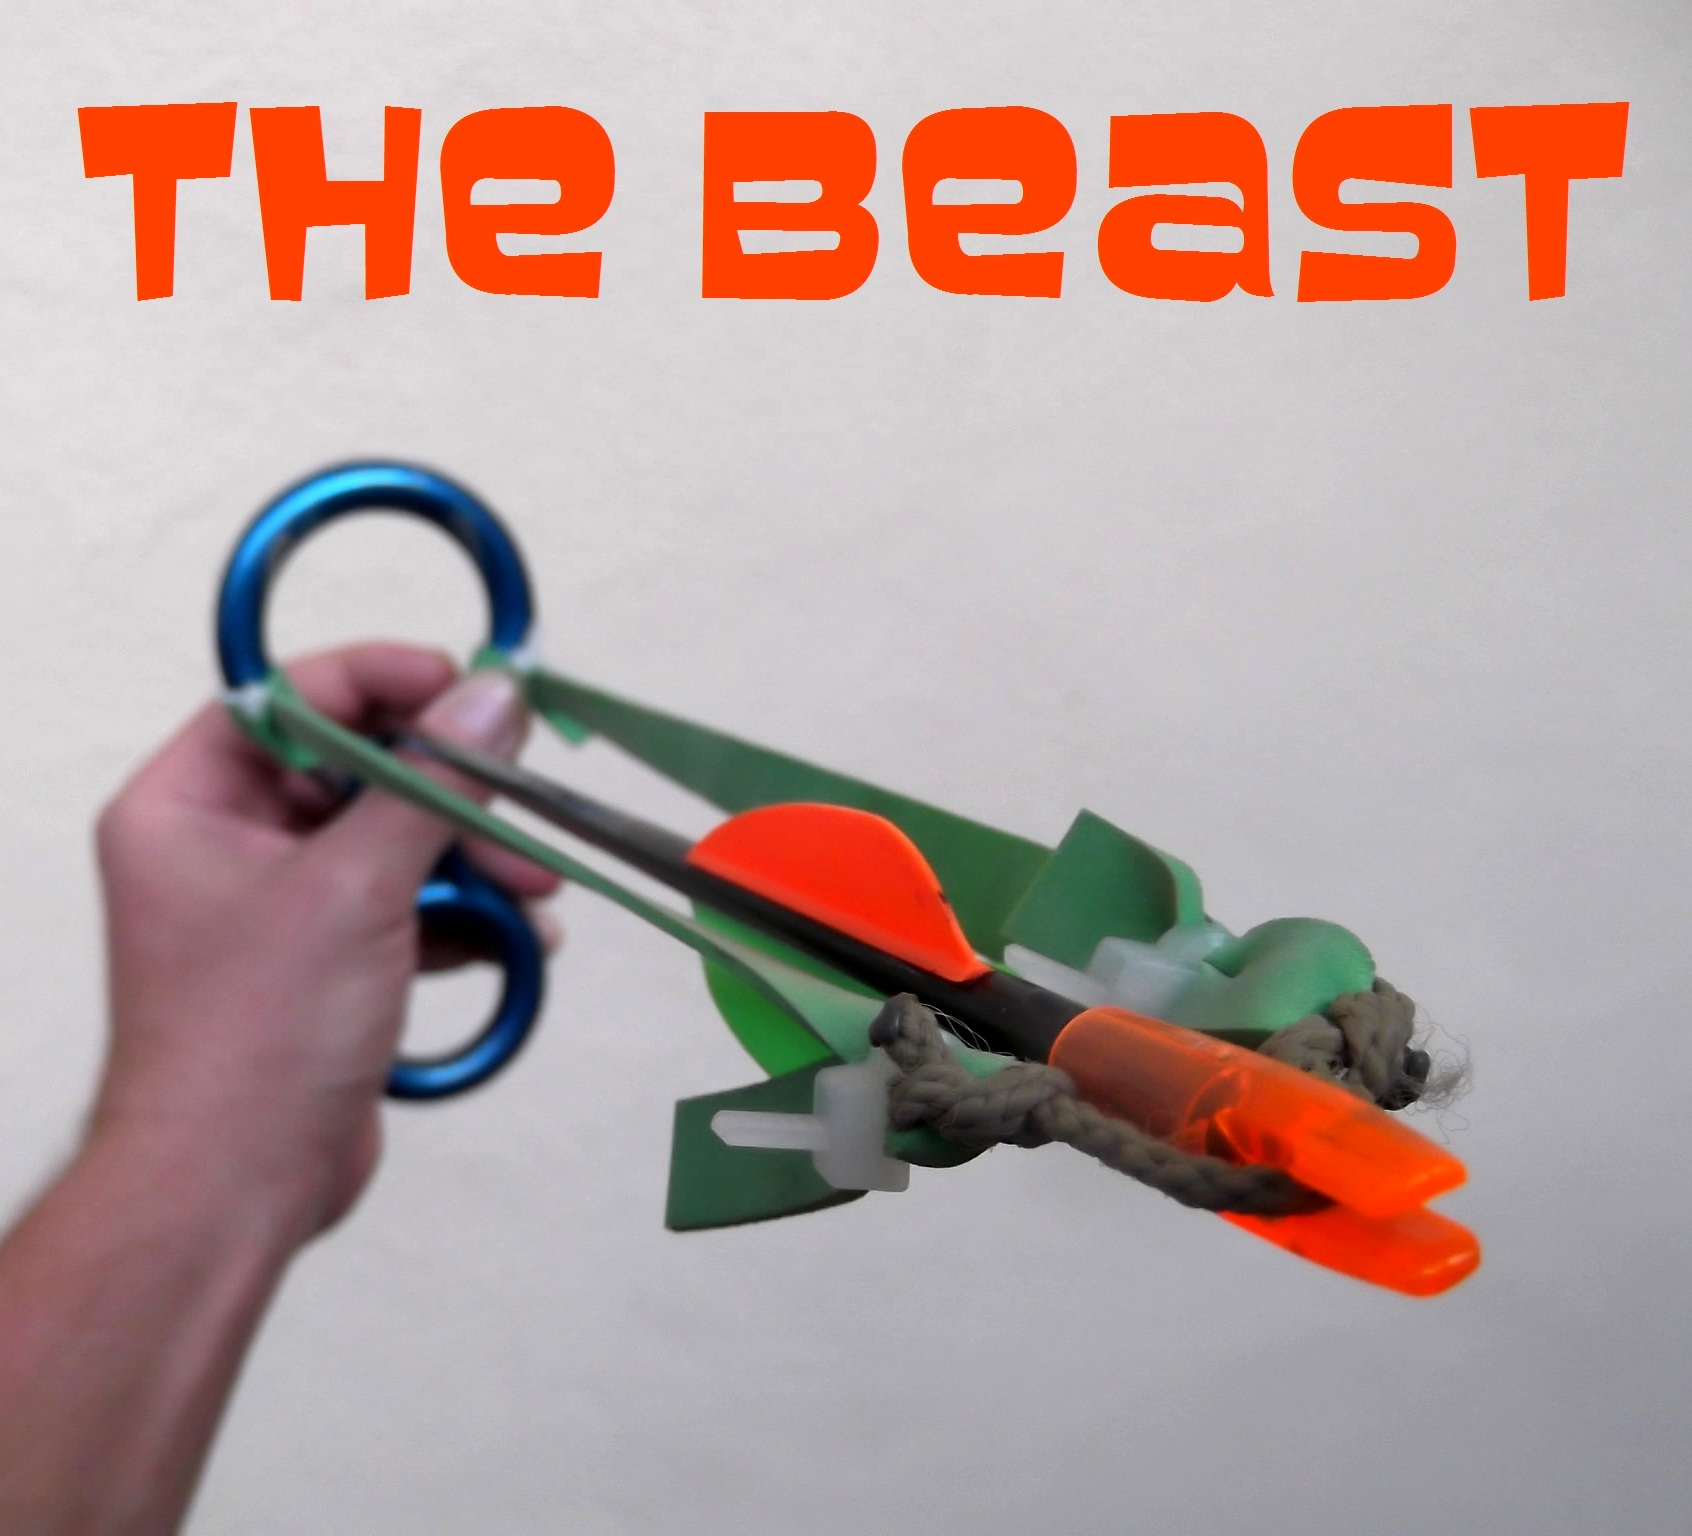 The BEAST - Bart's Eight Arrow ShooTer